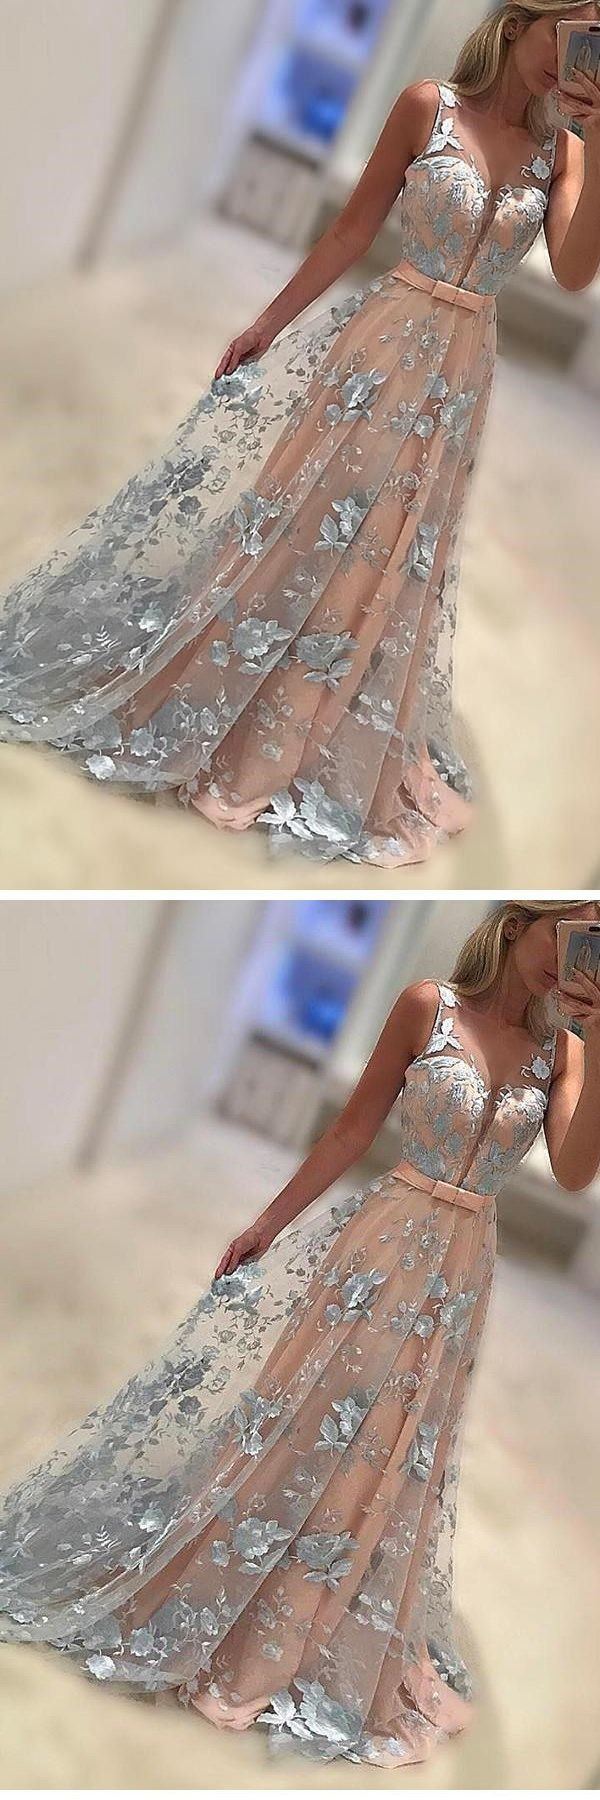 Coral A-Line Sleeveless Prom Gown Lace Appliques Sweep Train Evening Dress with Bowknot #prom #dresses #longpromdress #promdress #eveningdress #promdresses #partydresses